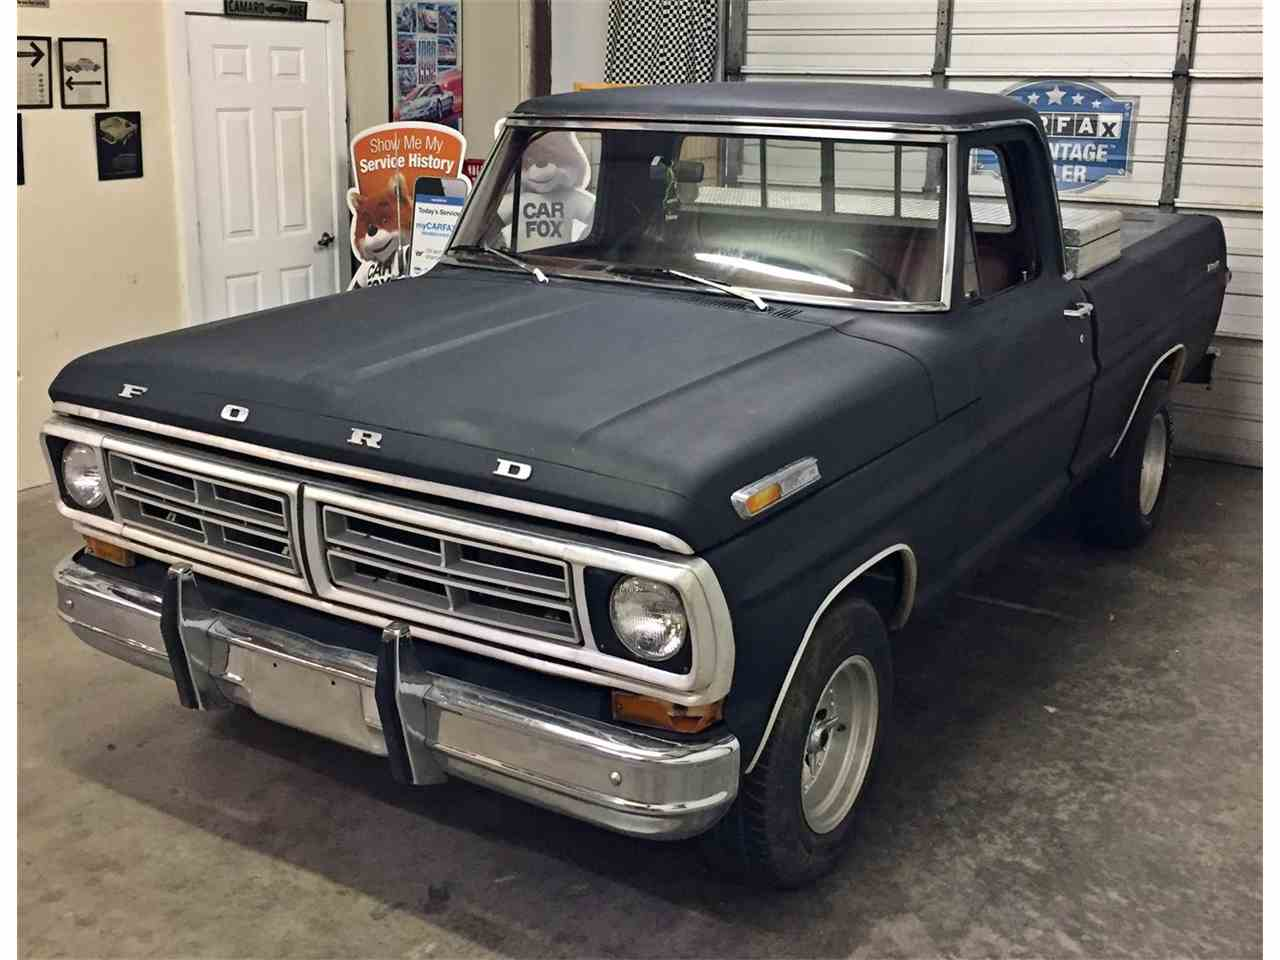 1971 f100 1971 to 1973 ford f100 for sale on classiccars com 13 available